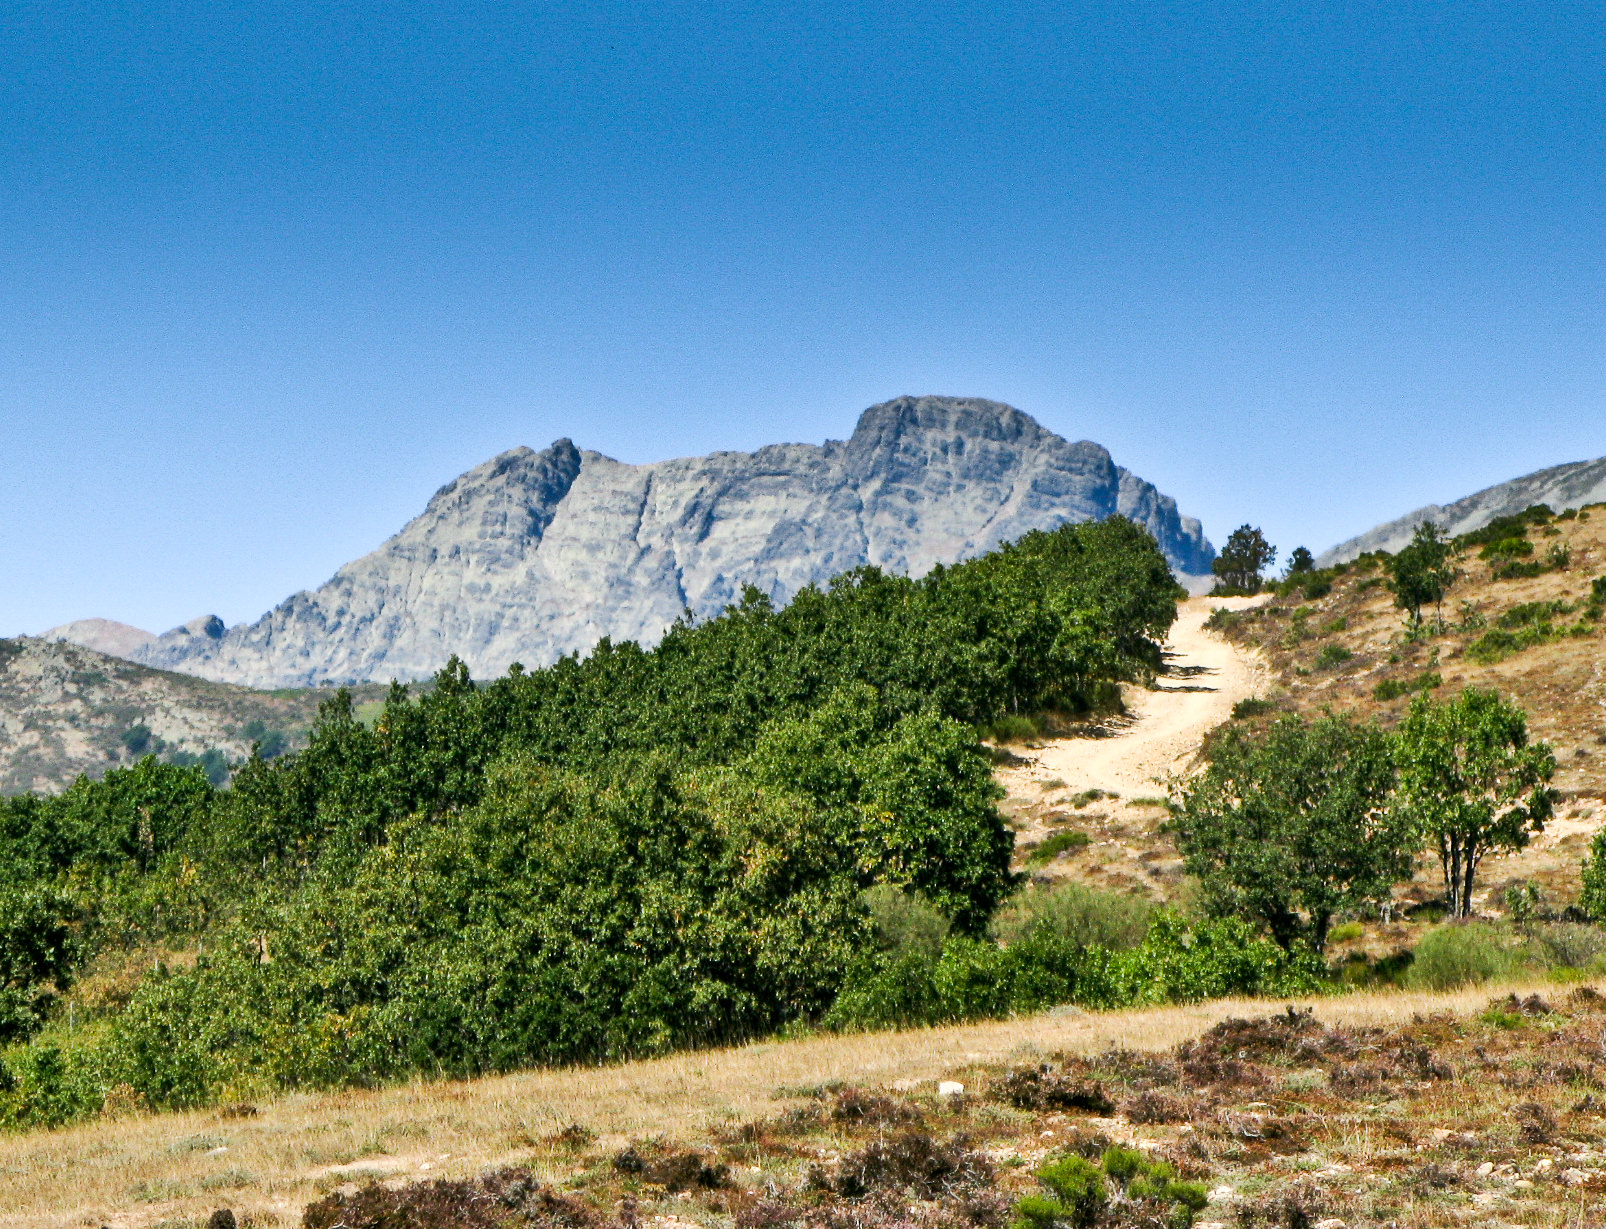 Mountain trail with a rocky mountain in the back in Palencia mountains